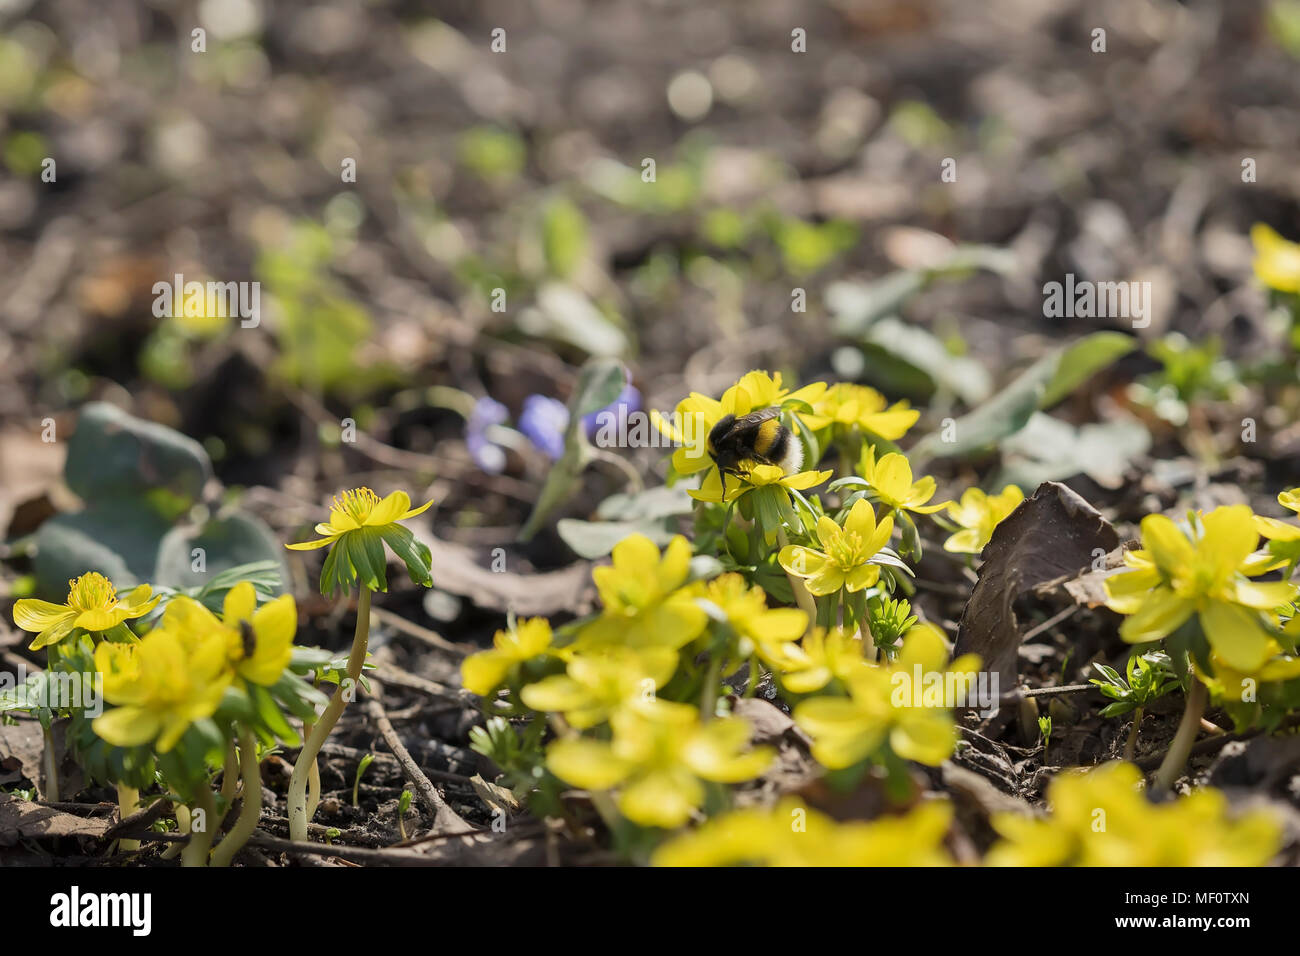 First spring flowers first bees and bumblebees flowering of yellow first spring flowers first bees and bumblebees flowering of yellow eranthis last years foliage selective focus spring background mightylinksfo